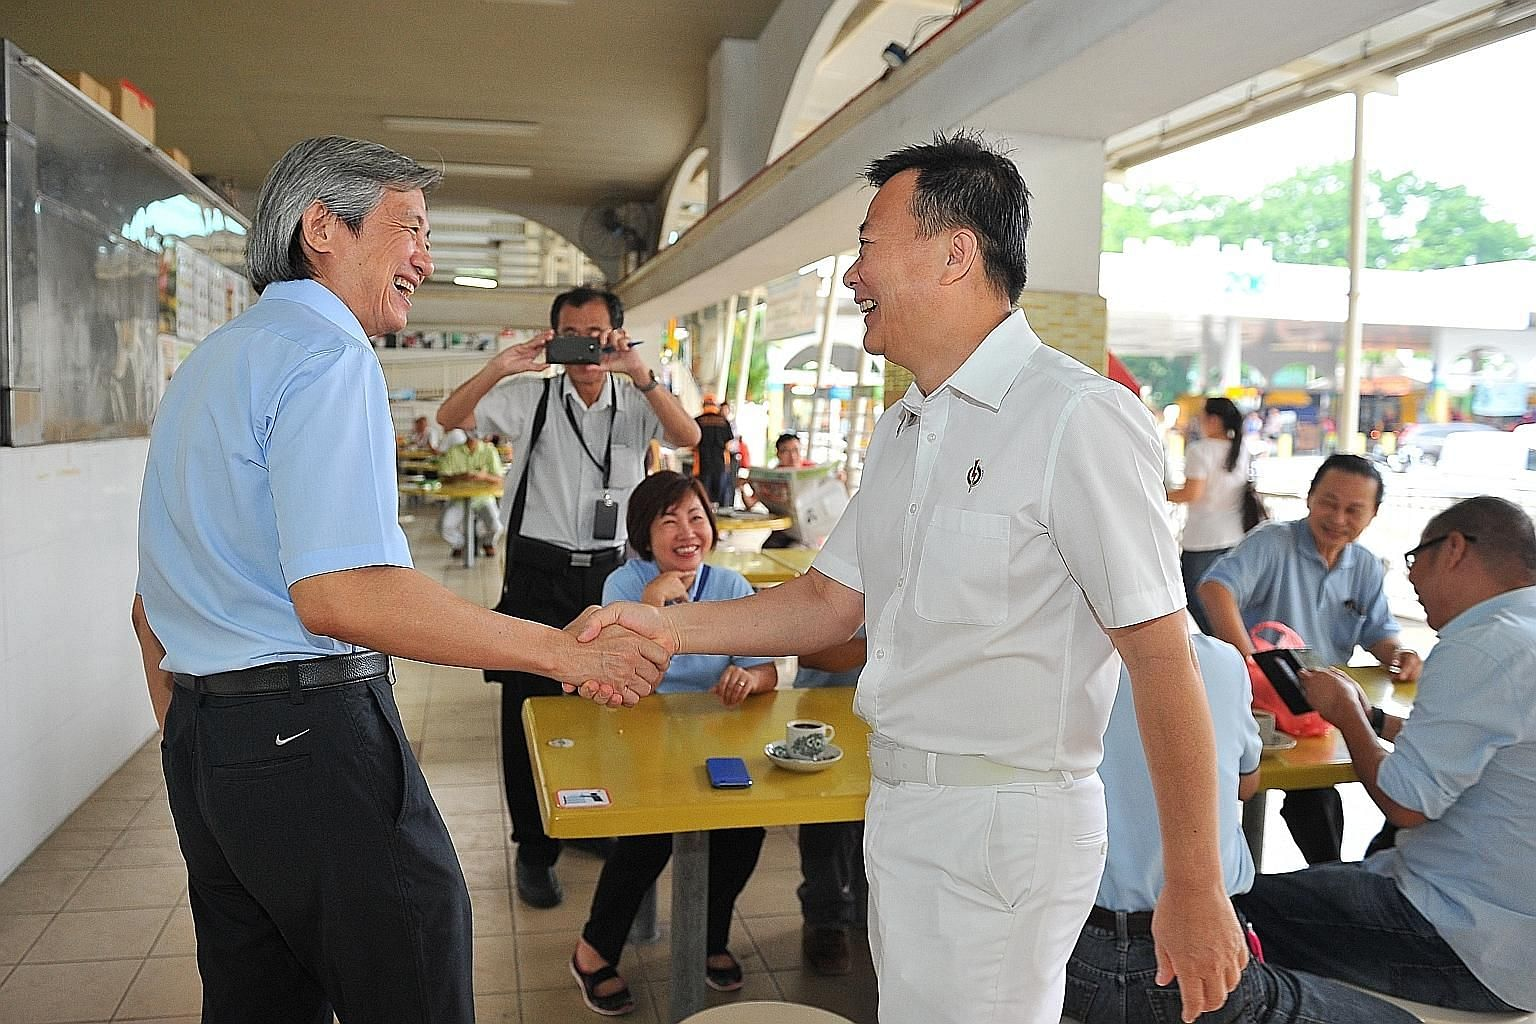 WP candidate Chen Show Mao (left) and PAP candidate Victor Lye greeting each other at Kovan Hougang Market and Food Centre yesterday. The next two days will be a battle to win over swing voters, with the daily schedules of both parties packed with wa